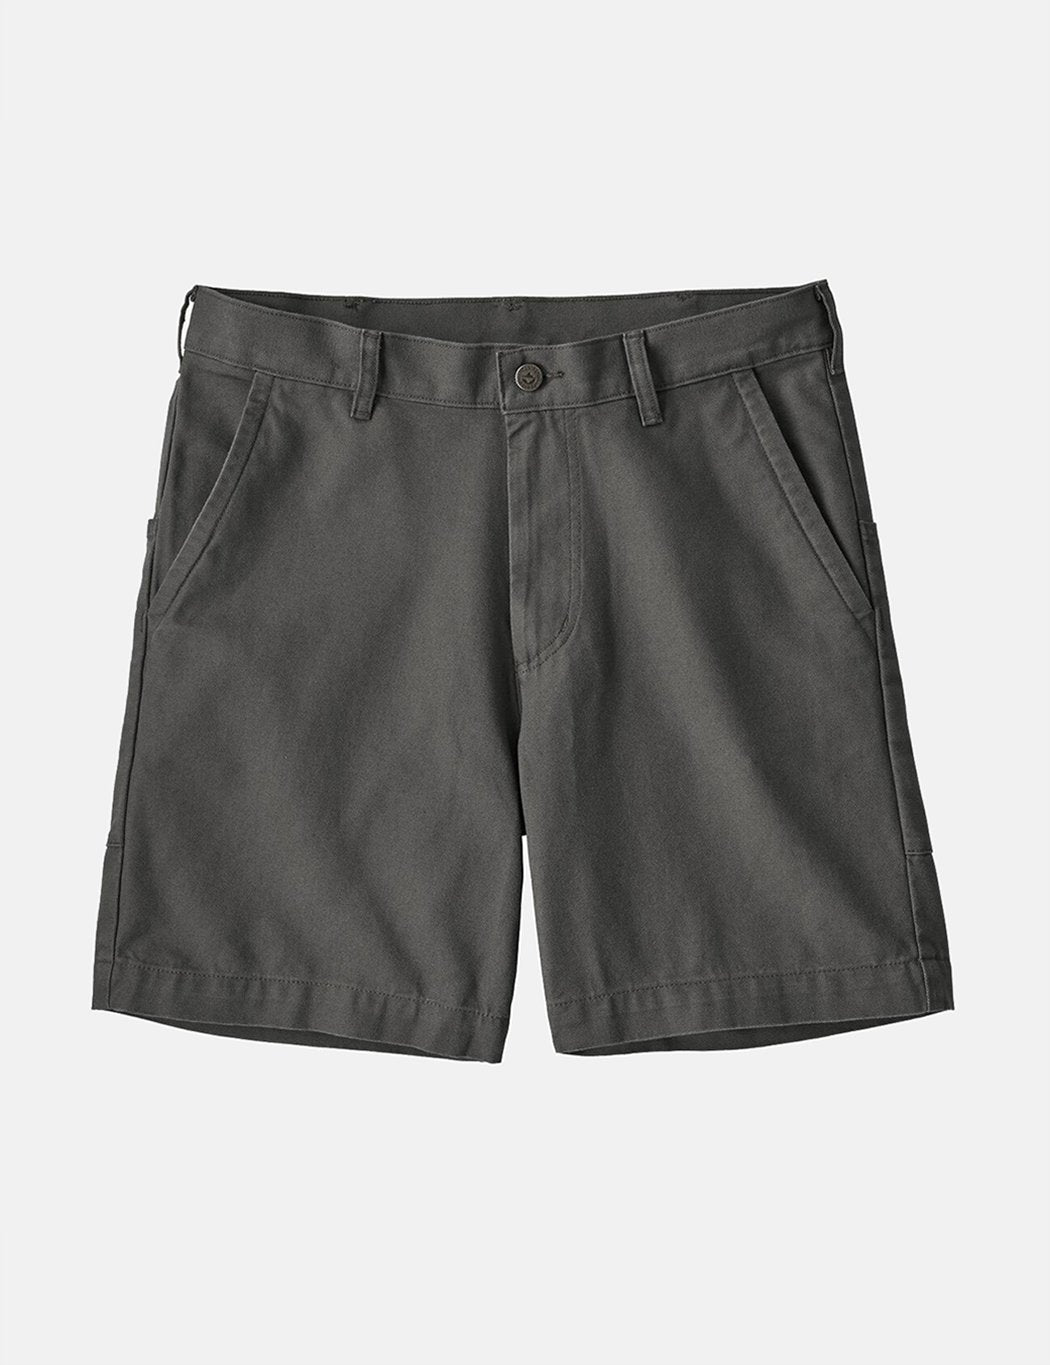 "Stehen Patagonia Up Shorts (7"" ) - Forge Grey"